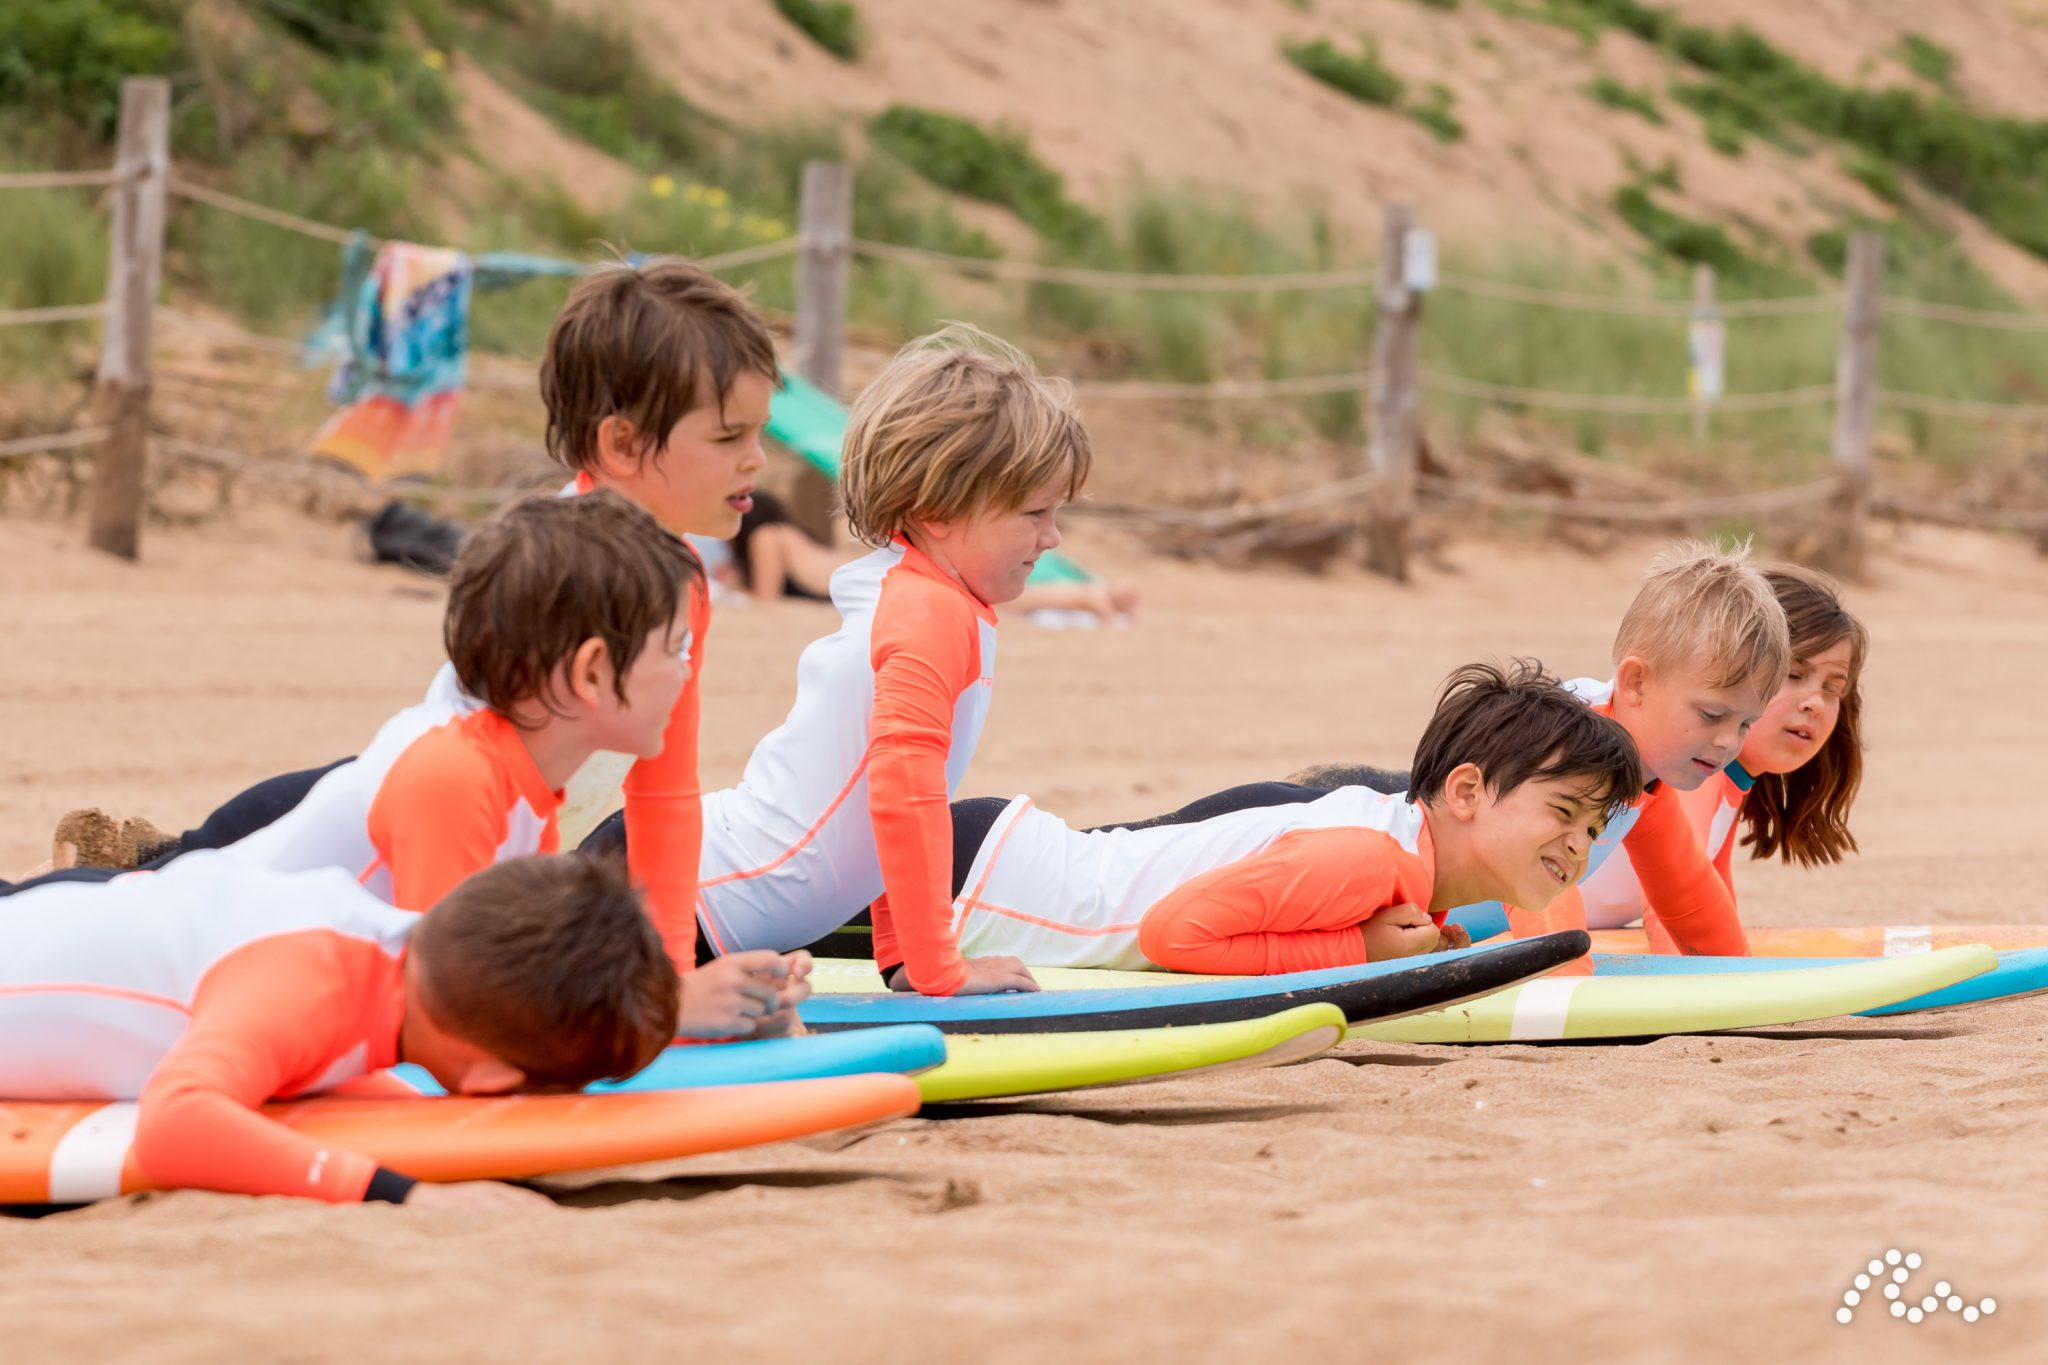 Family surfing at surf school